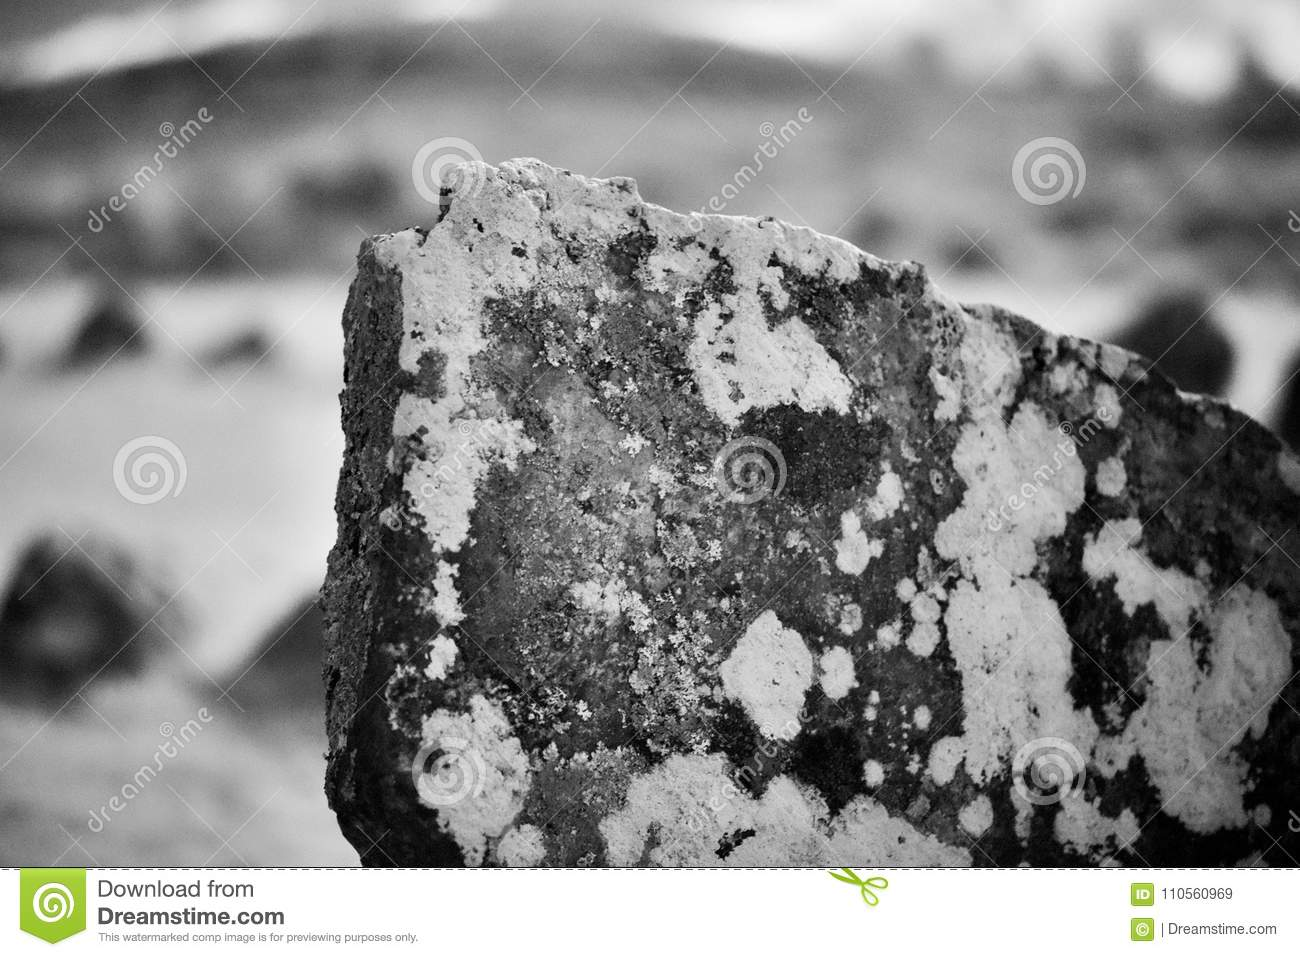 Black and white stones with sharp edges abstract detail of the stone looks very nice nice texture backgraund